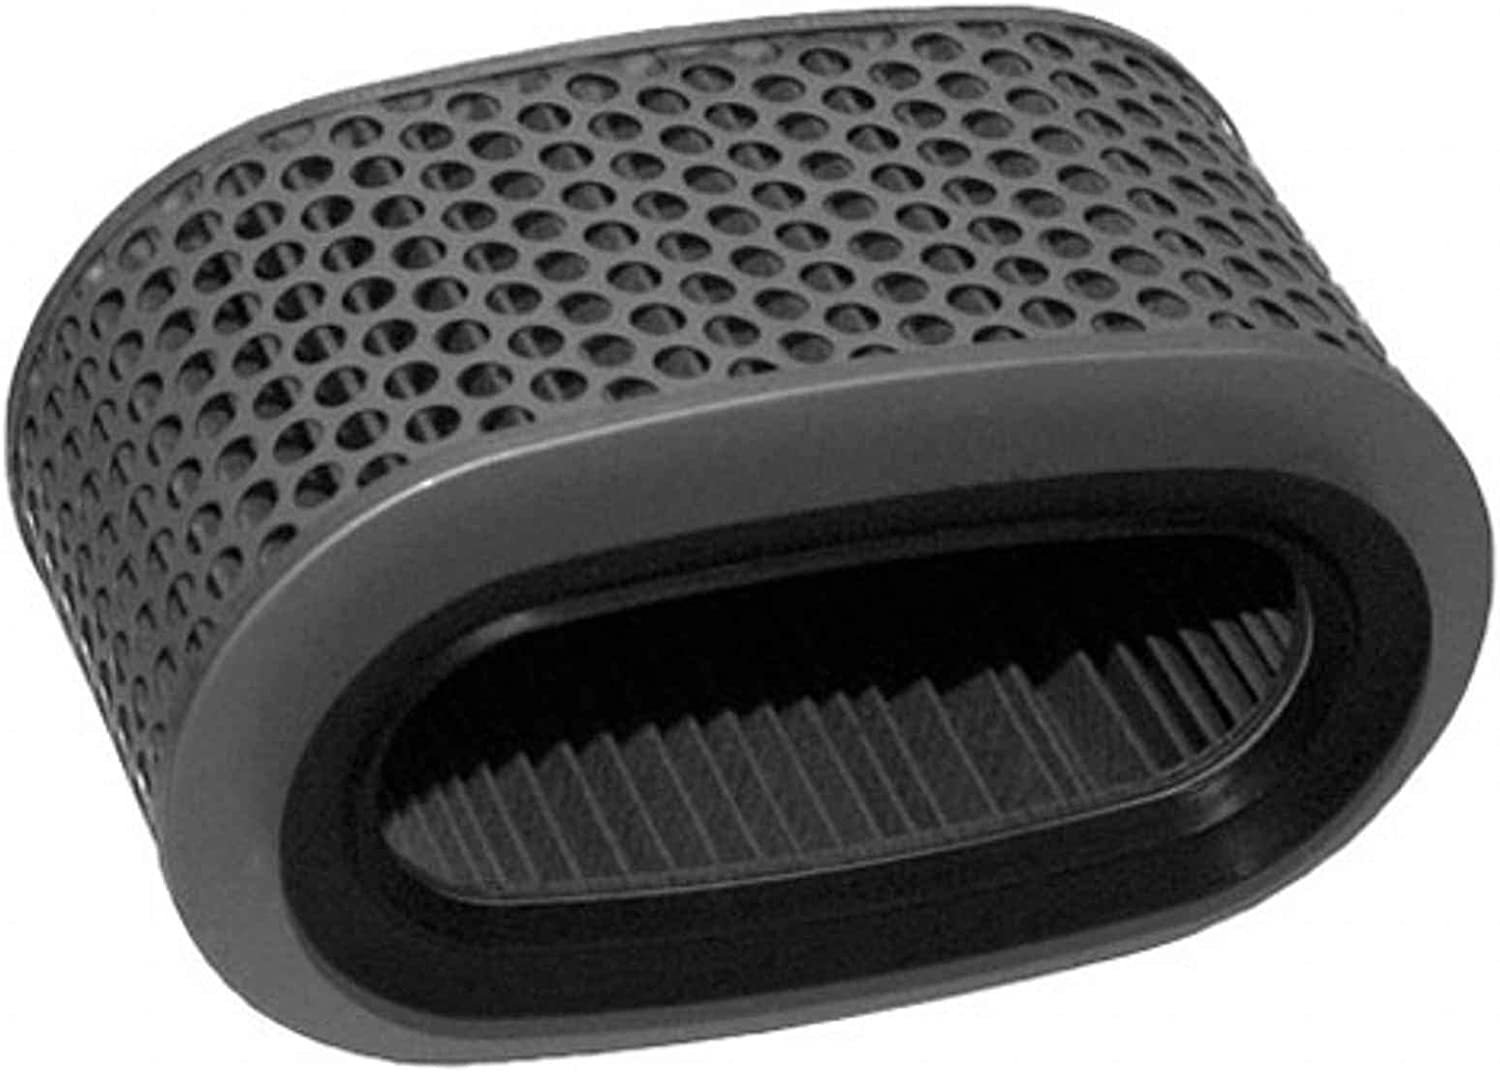 Emgo Replacement Air Filter for Honda Shadow 750 VT750 97-07